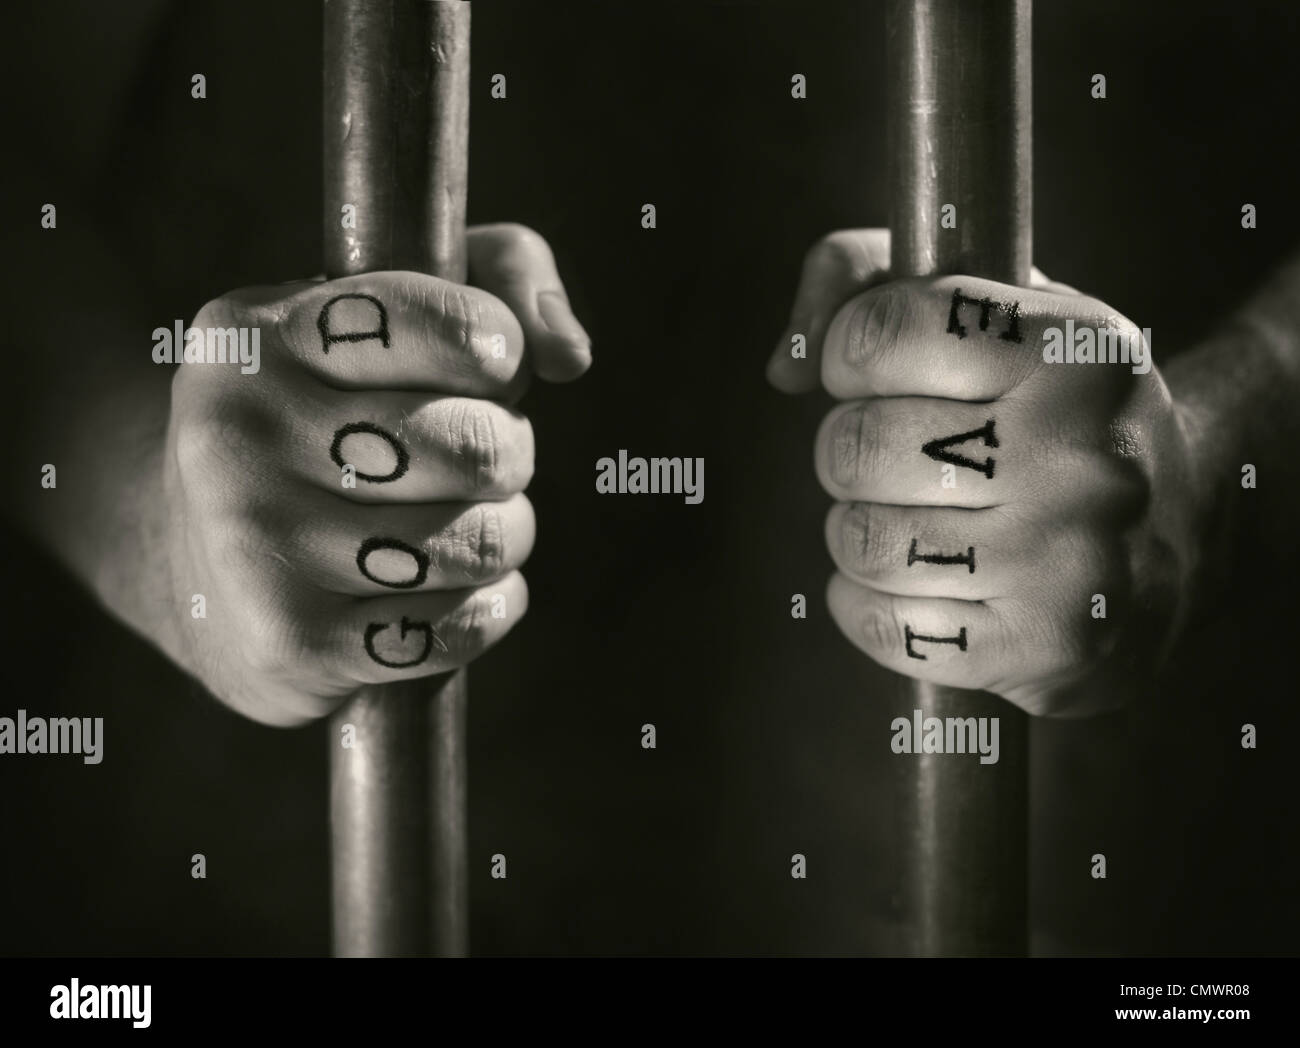 Man with (fake) Good and Evil tattoos behind prison bars. - Stock Image